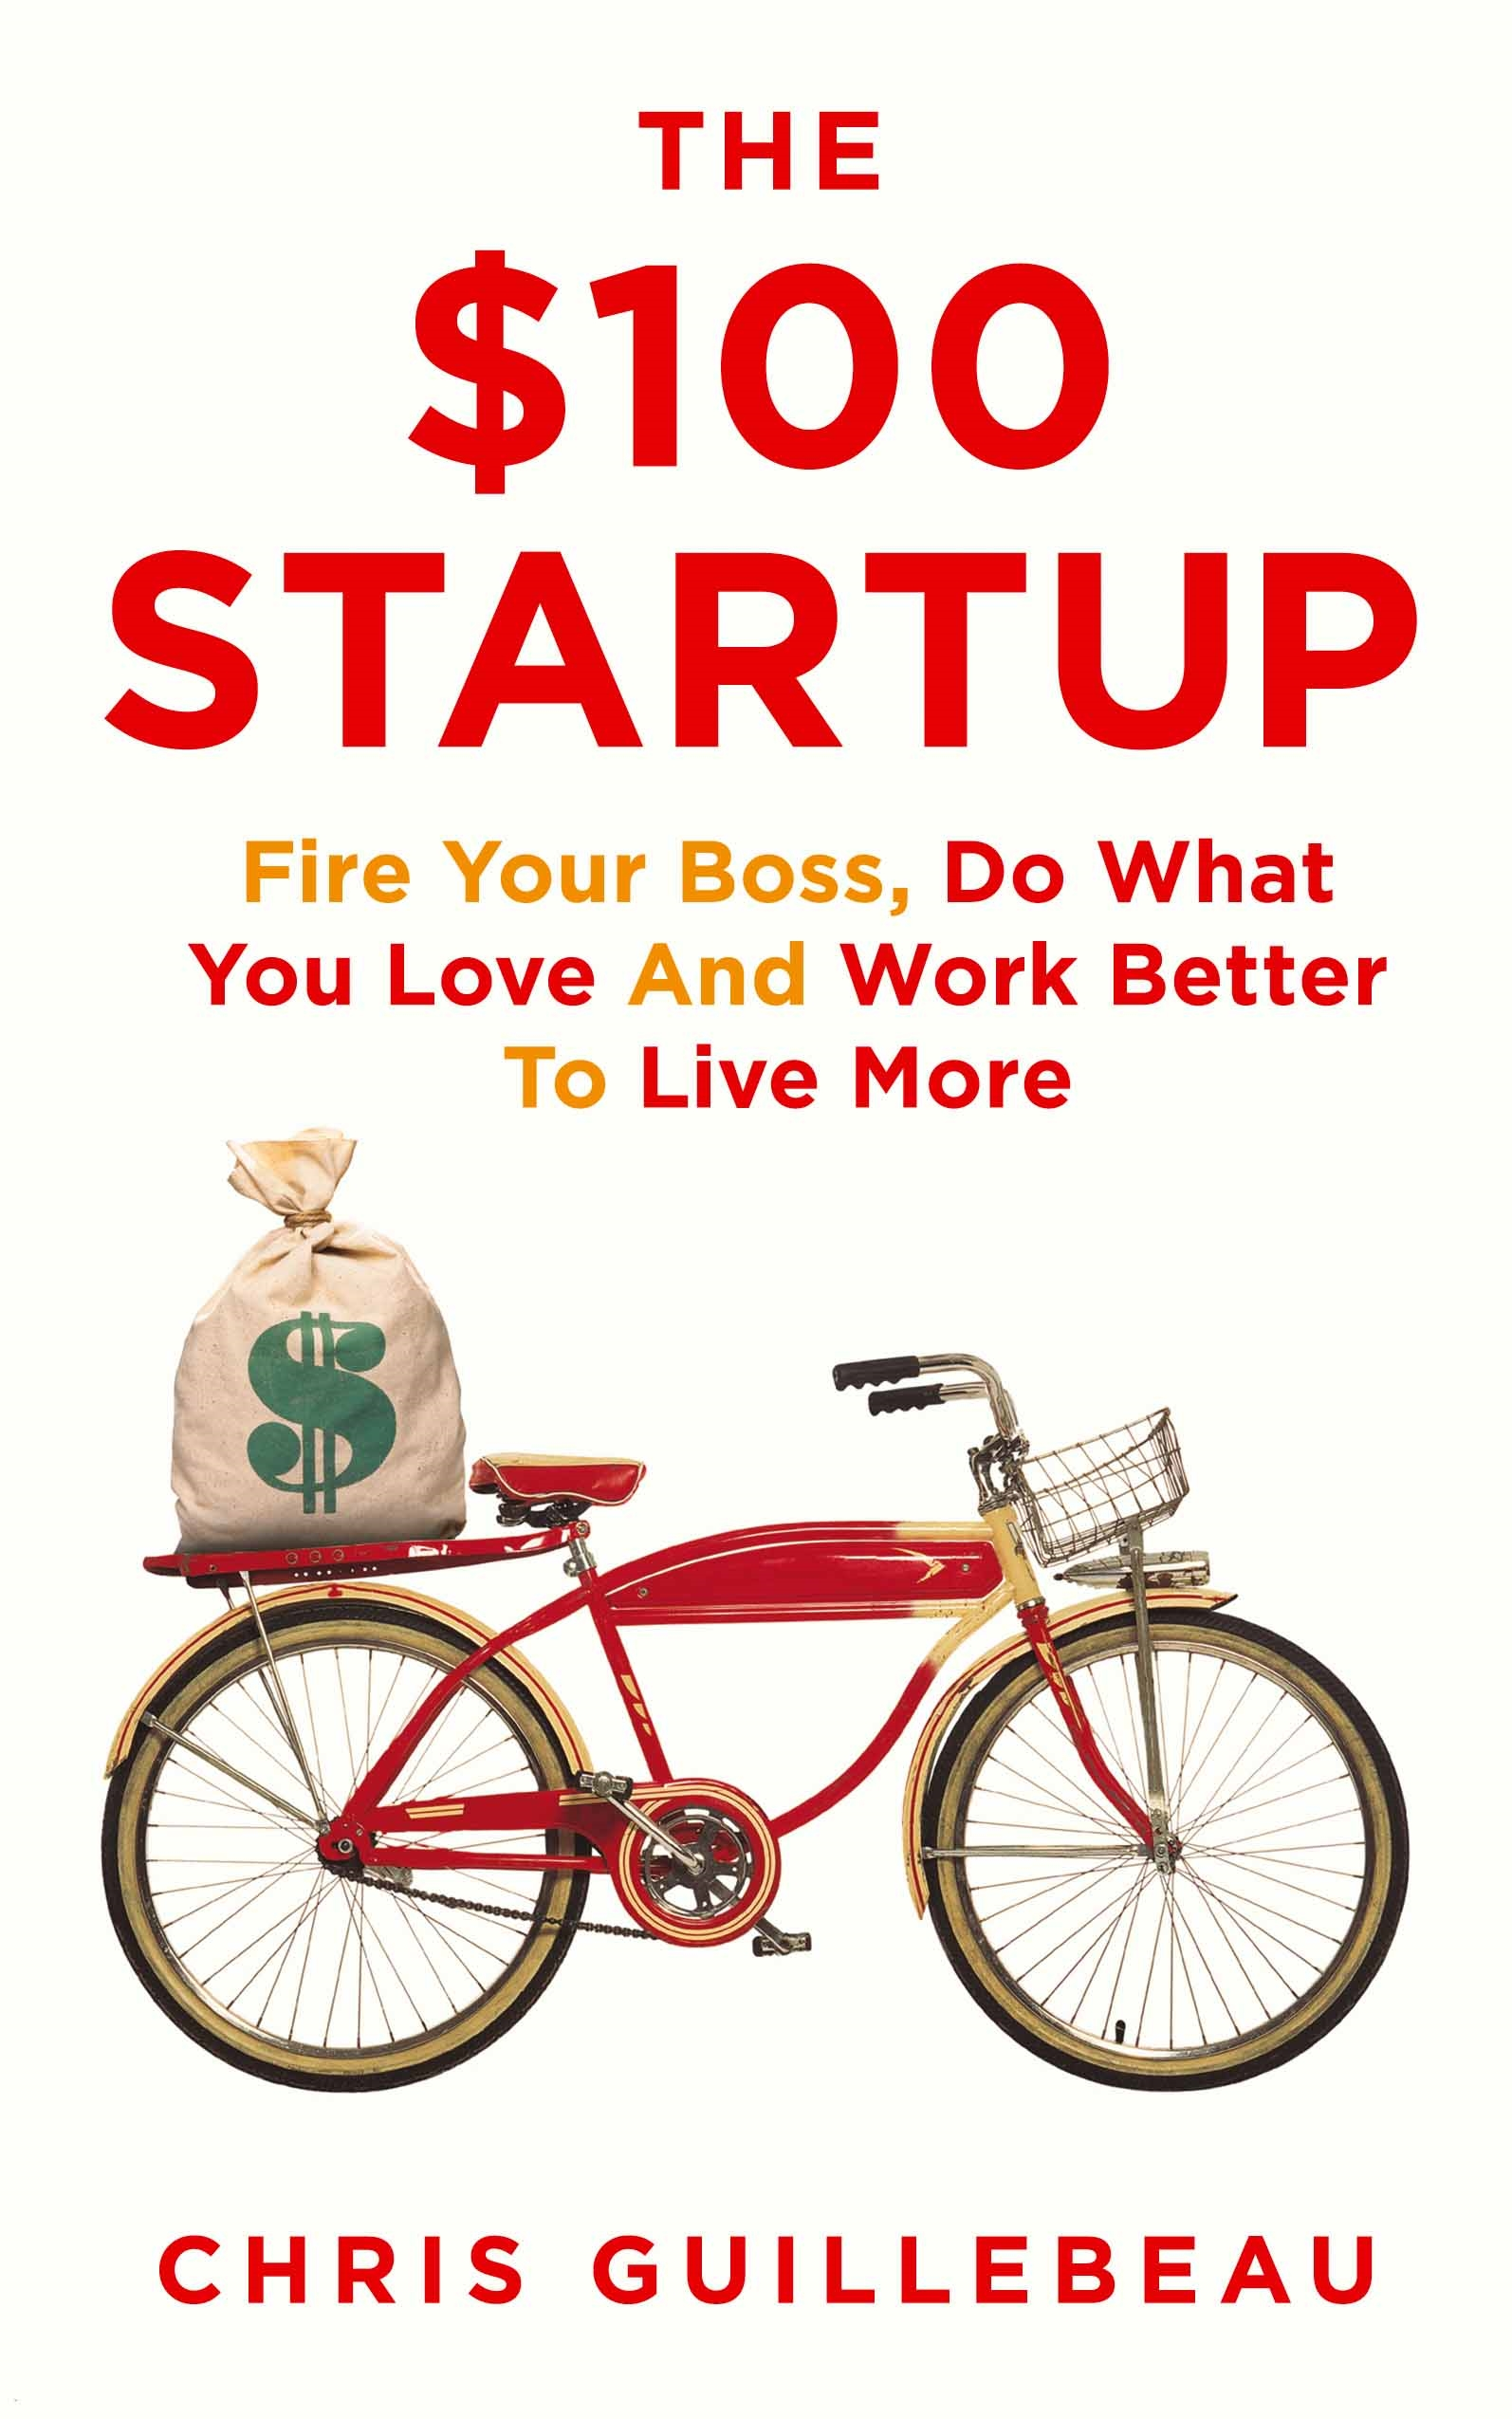 The $100 Startup by Chris Guillebeau, ISBN: 9781447286318